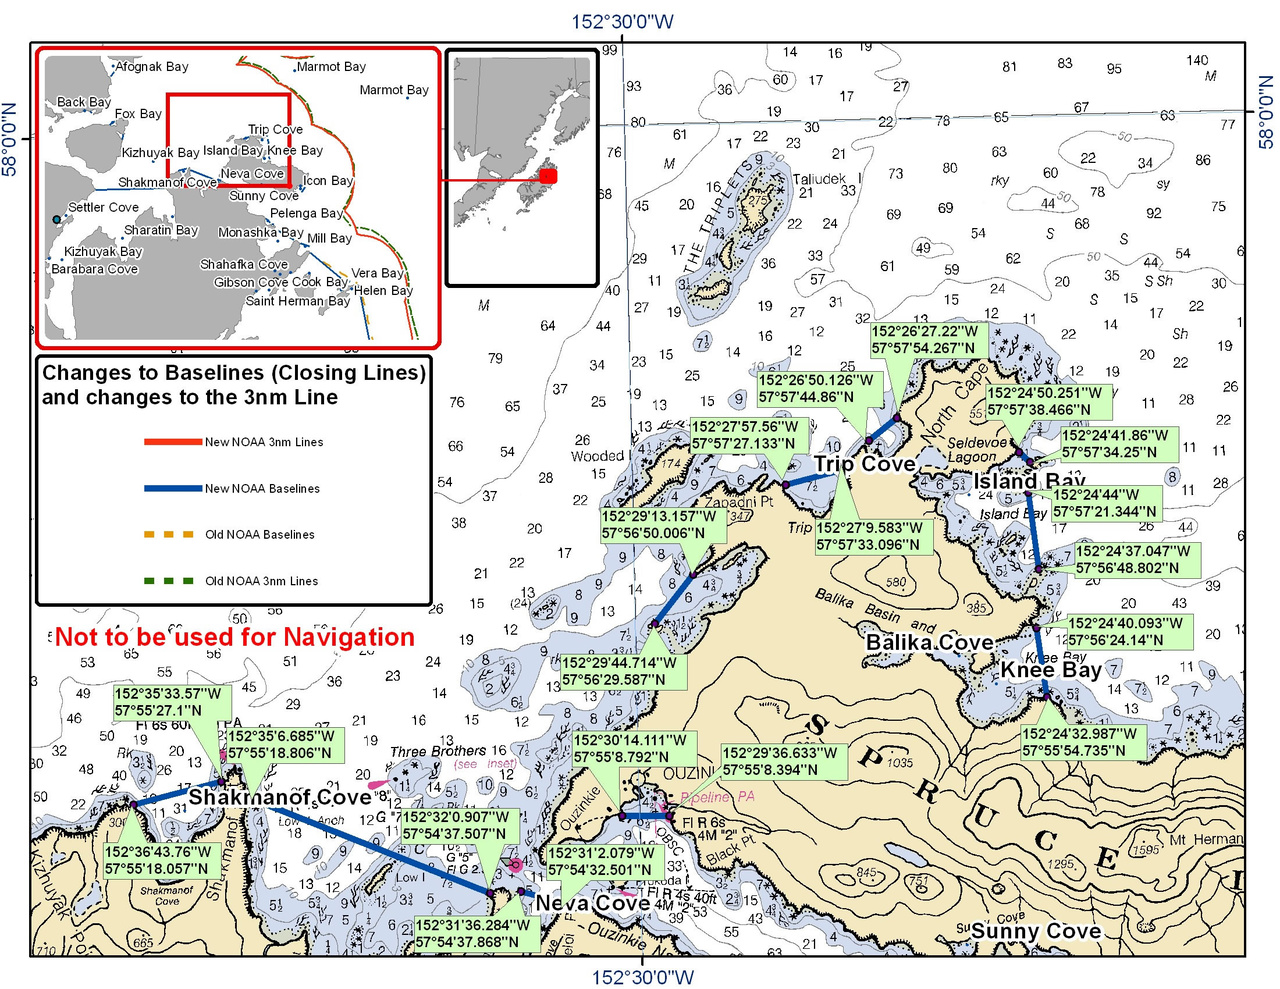 Chart for Northern Spruce Island and Shakmanof Cove